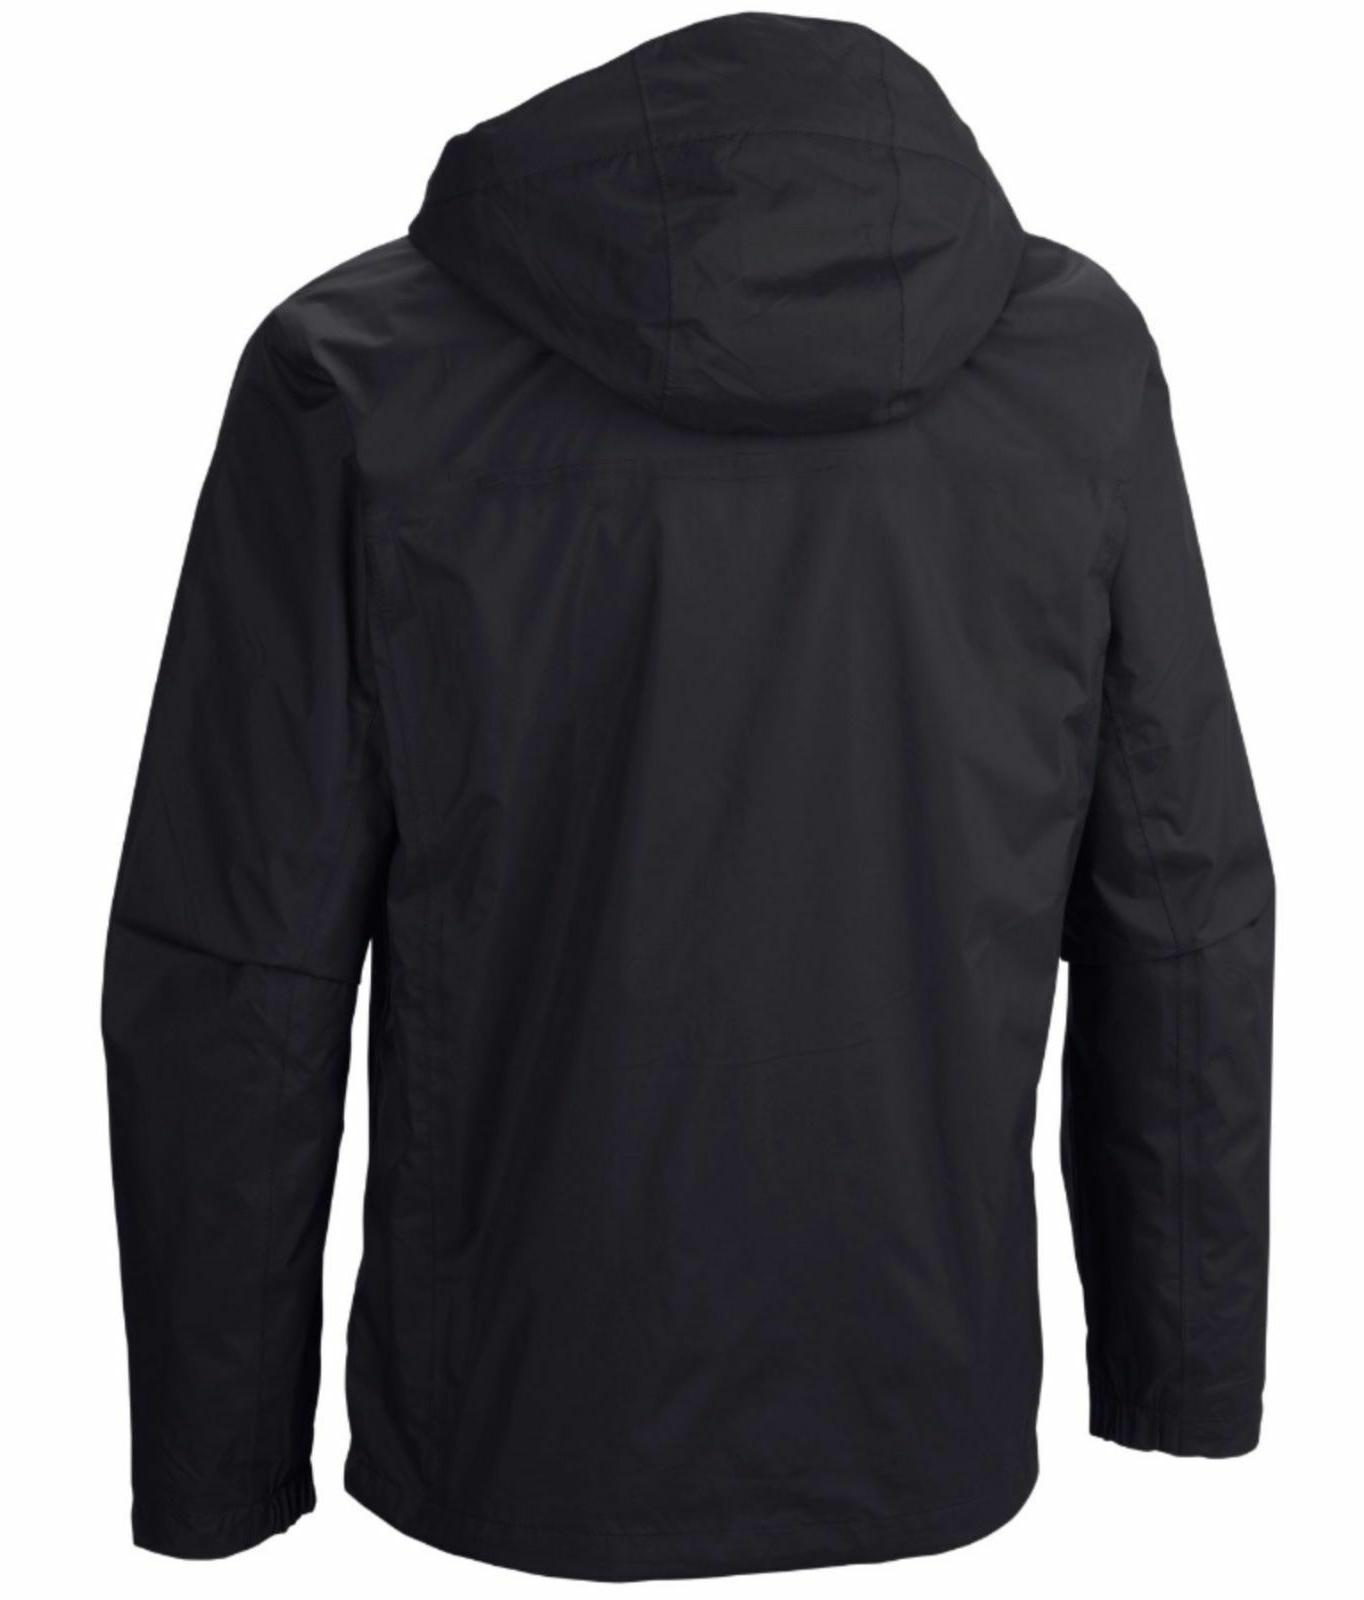 New Columbia mens Timber Pointe jacket